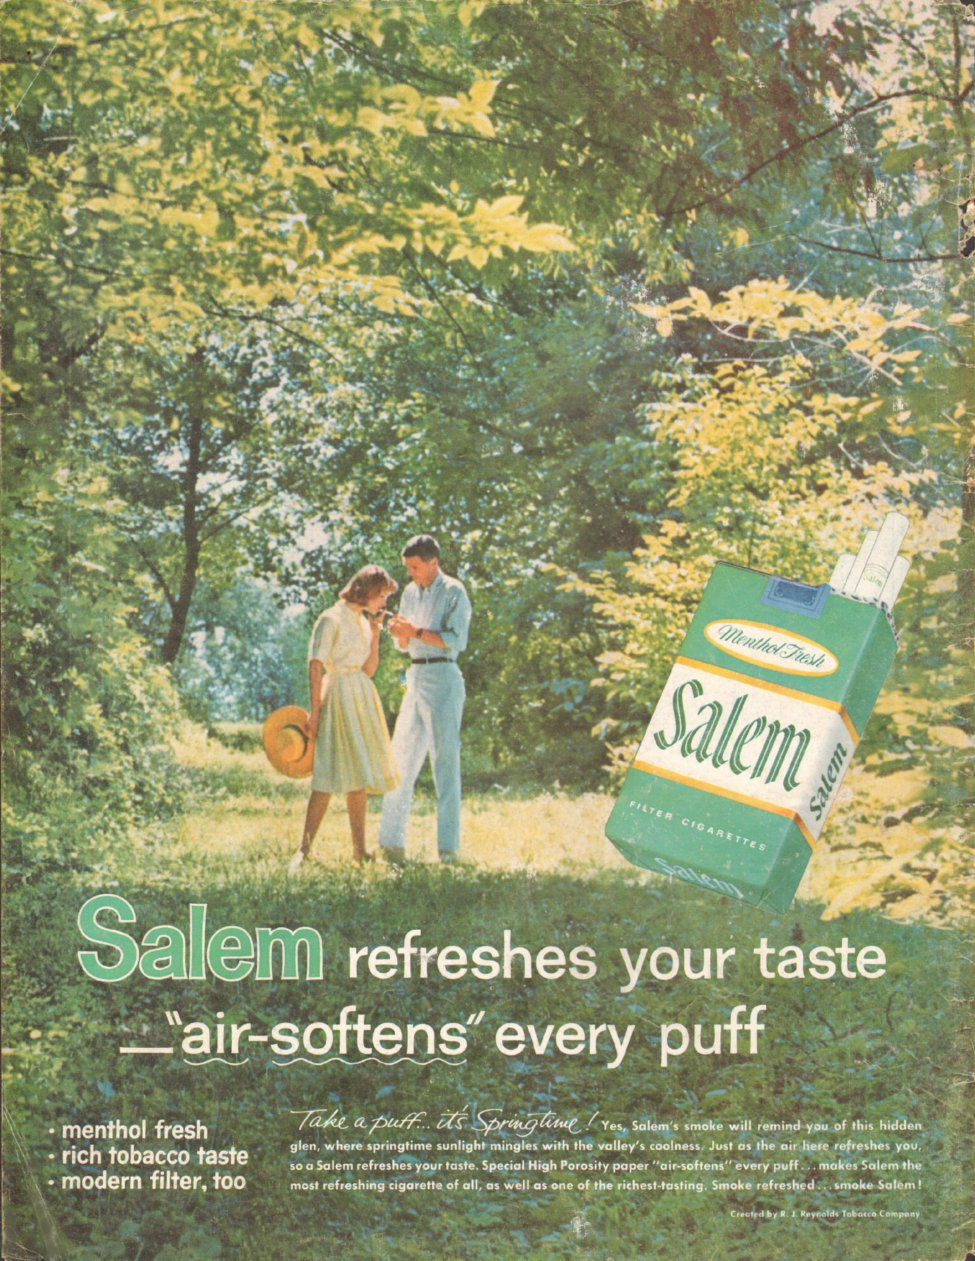 SALEM CIGARETTES LIFE 05/05/1961 BACK COVER